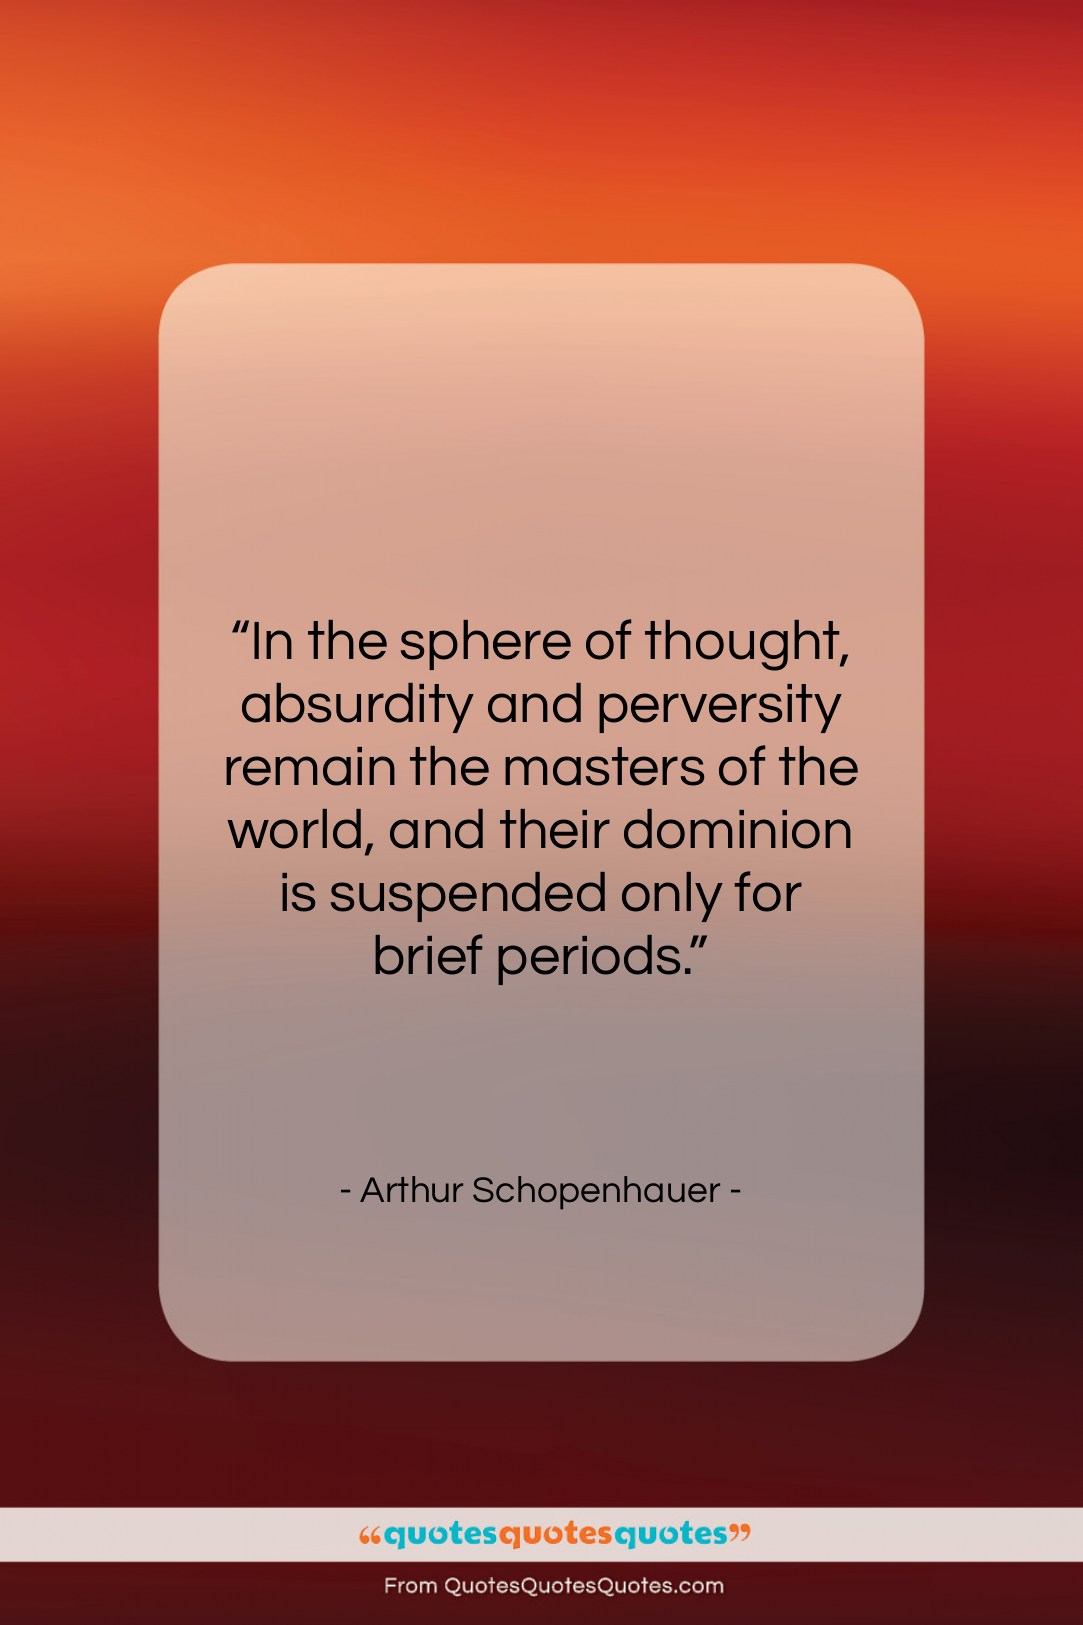 """Arthur Schopenhauer quote: """"In the sphere of thought, absurdity and…""""- at QuotesQuotesQuotes.com"""